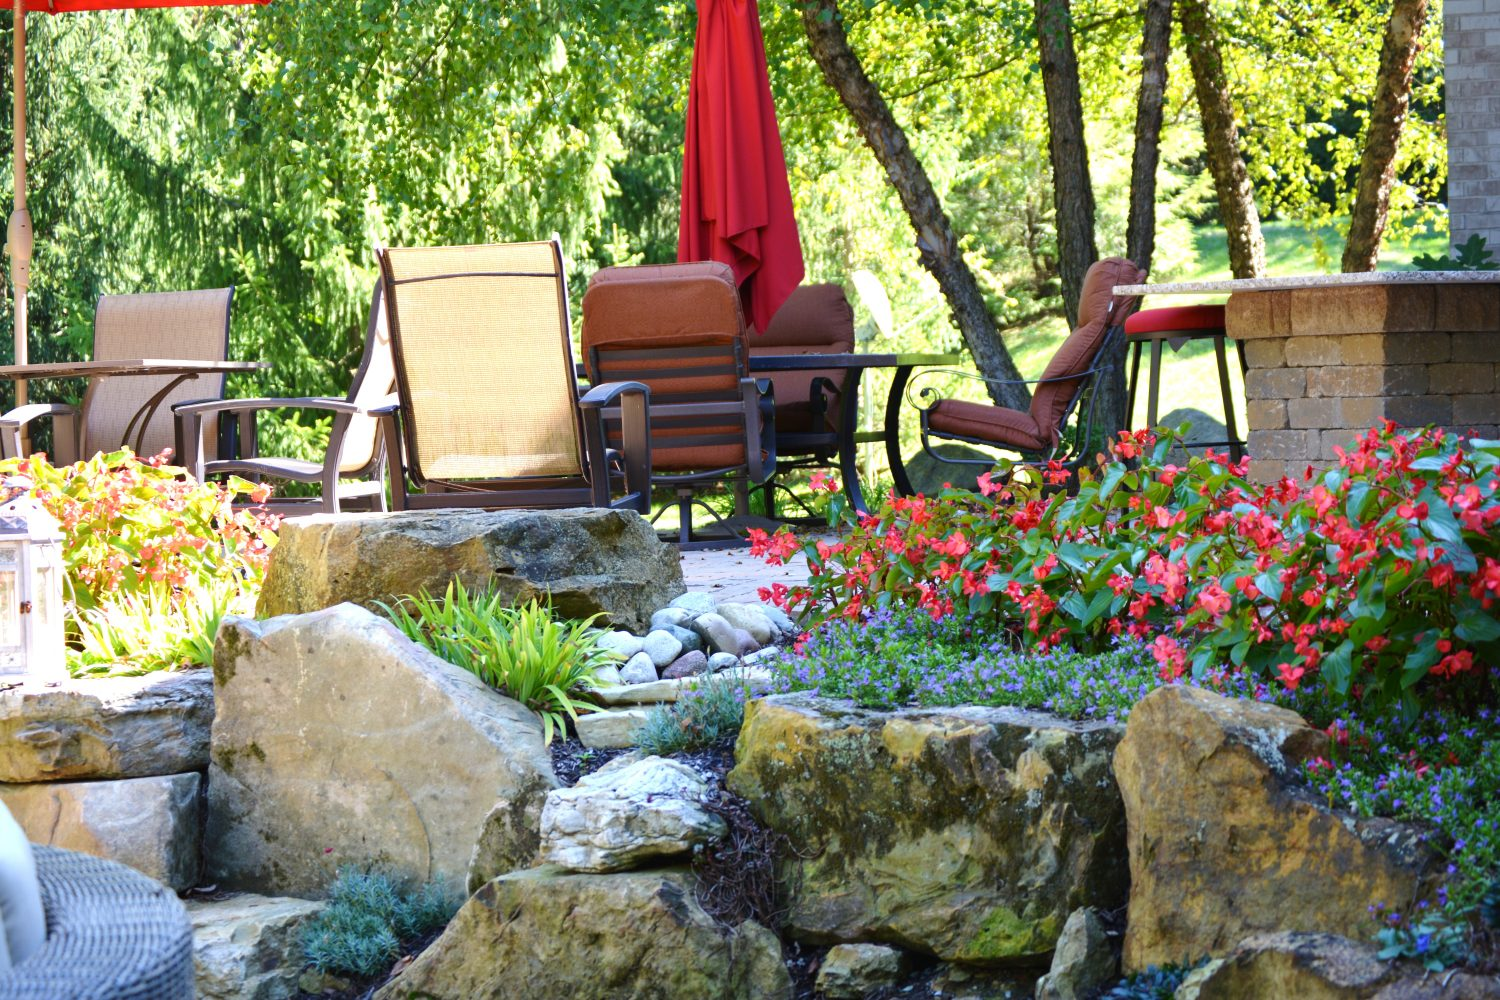 Natural hardscaping and patio furniture